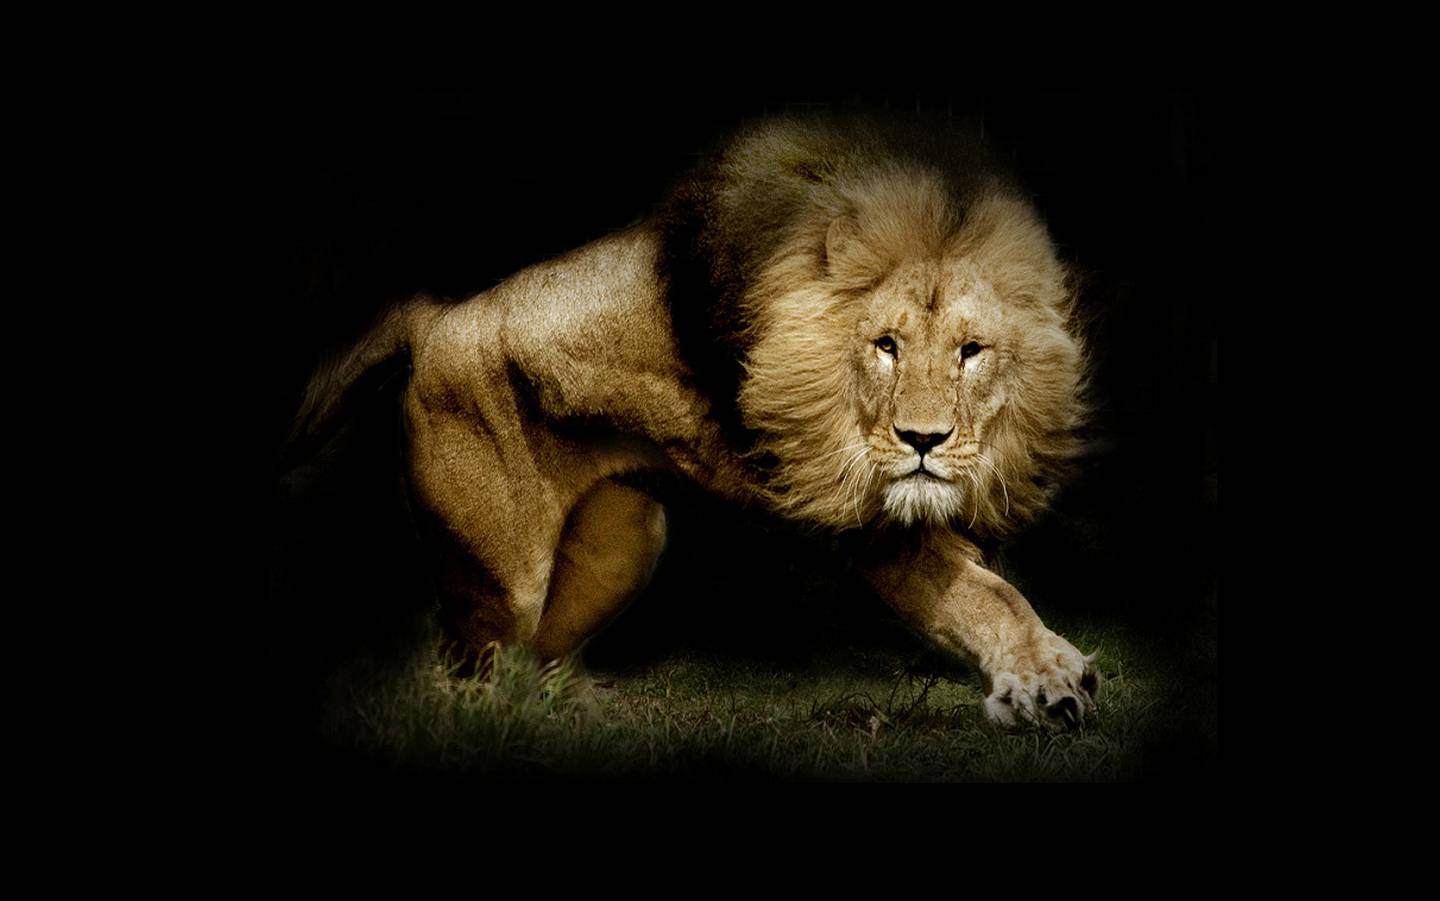 download lions mobile wallpaper which is under the lion wallpapers 1440x901